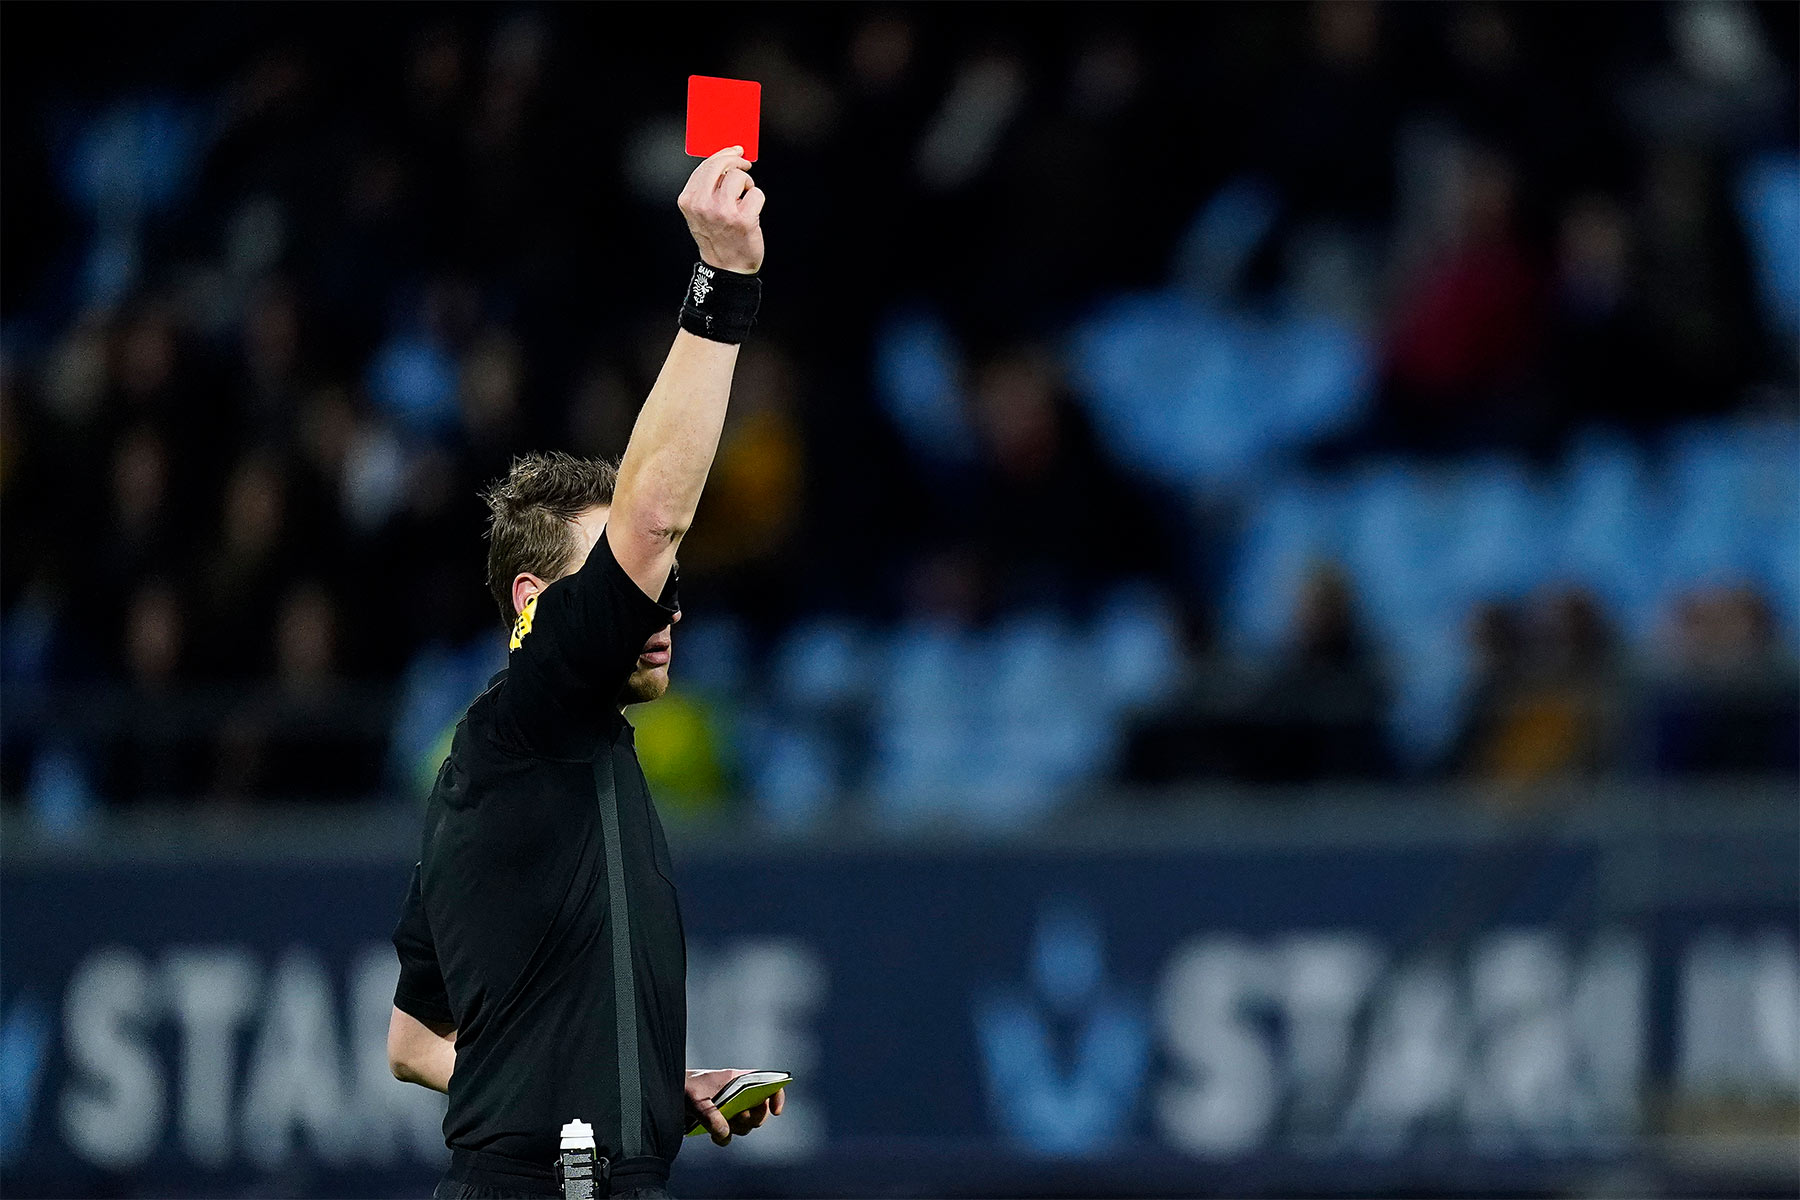 ref with red card